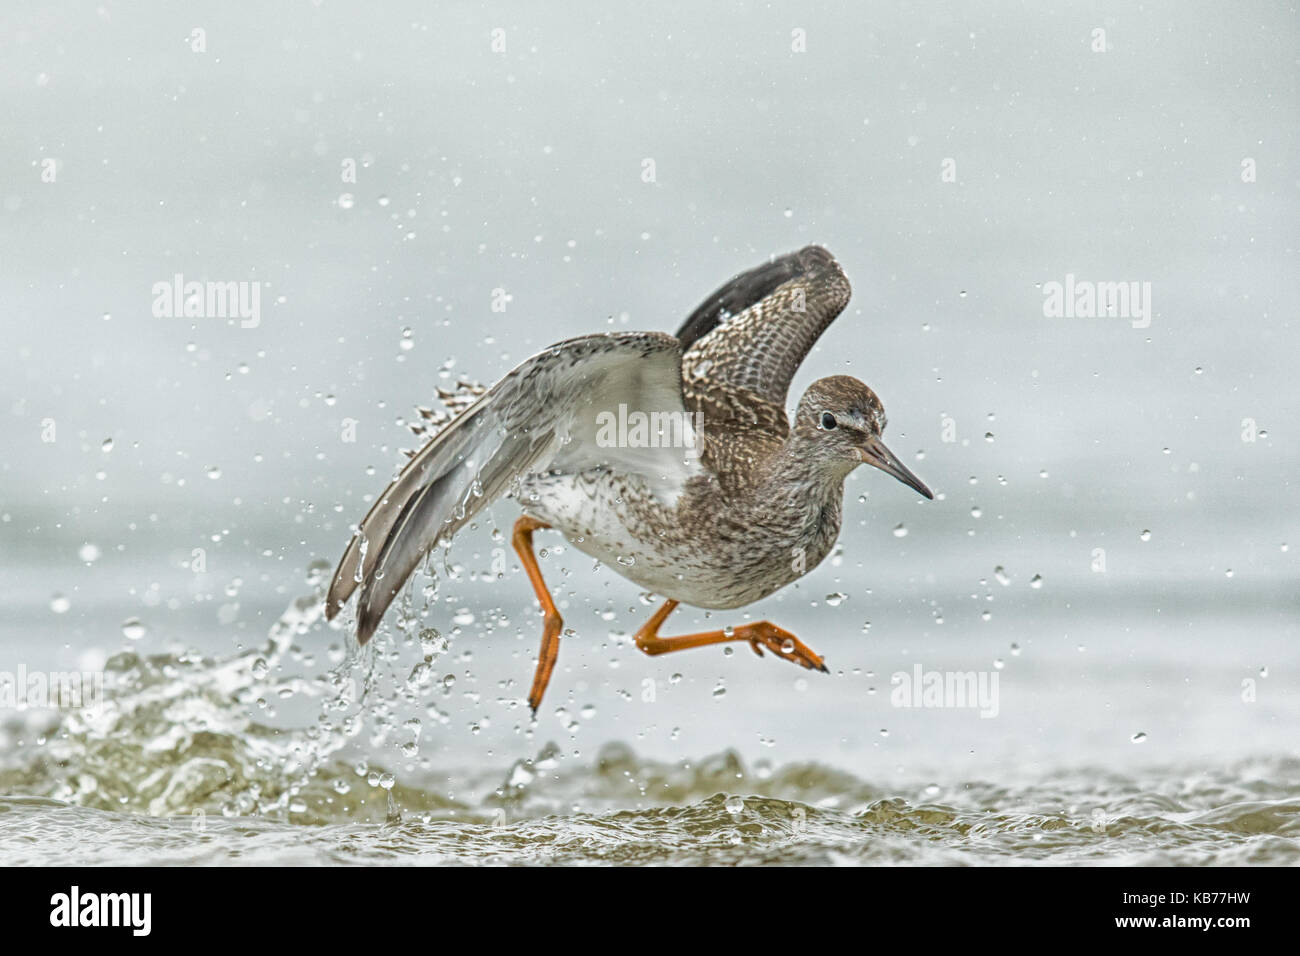 Common Redshank (Tringa totanus) jumping around in shallow water, The Netherlands, Wieringermeer - Stock Image